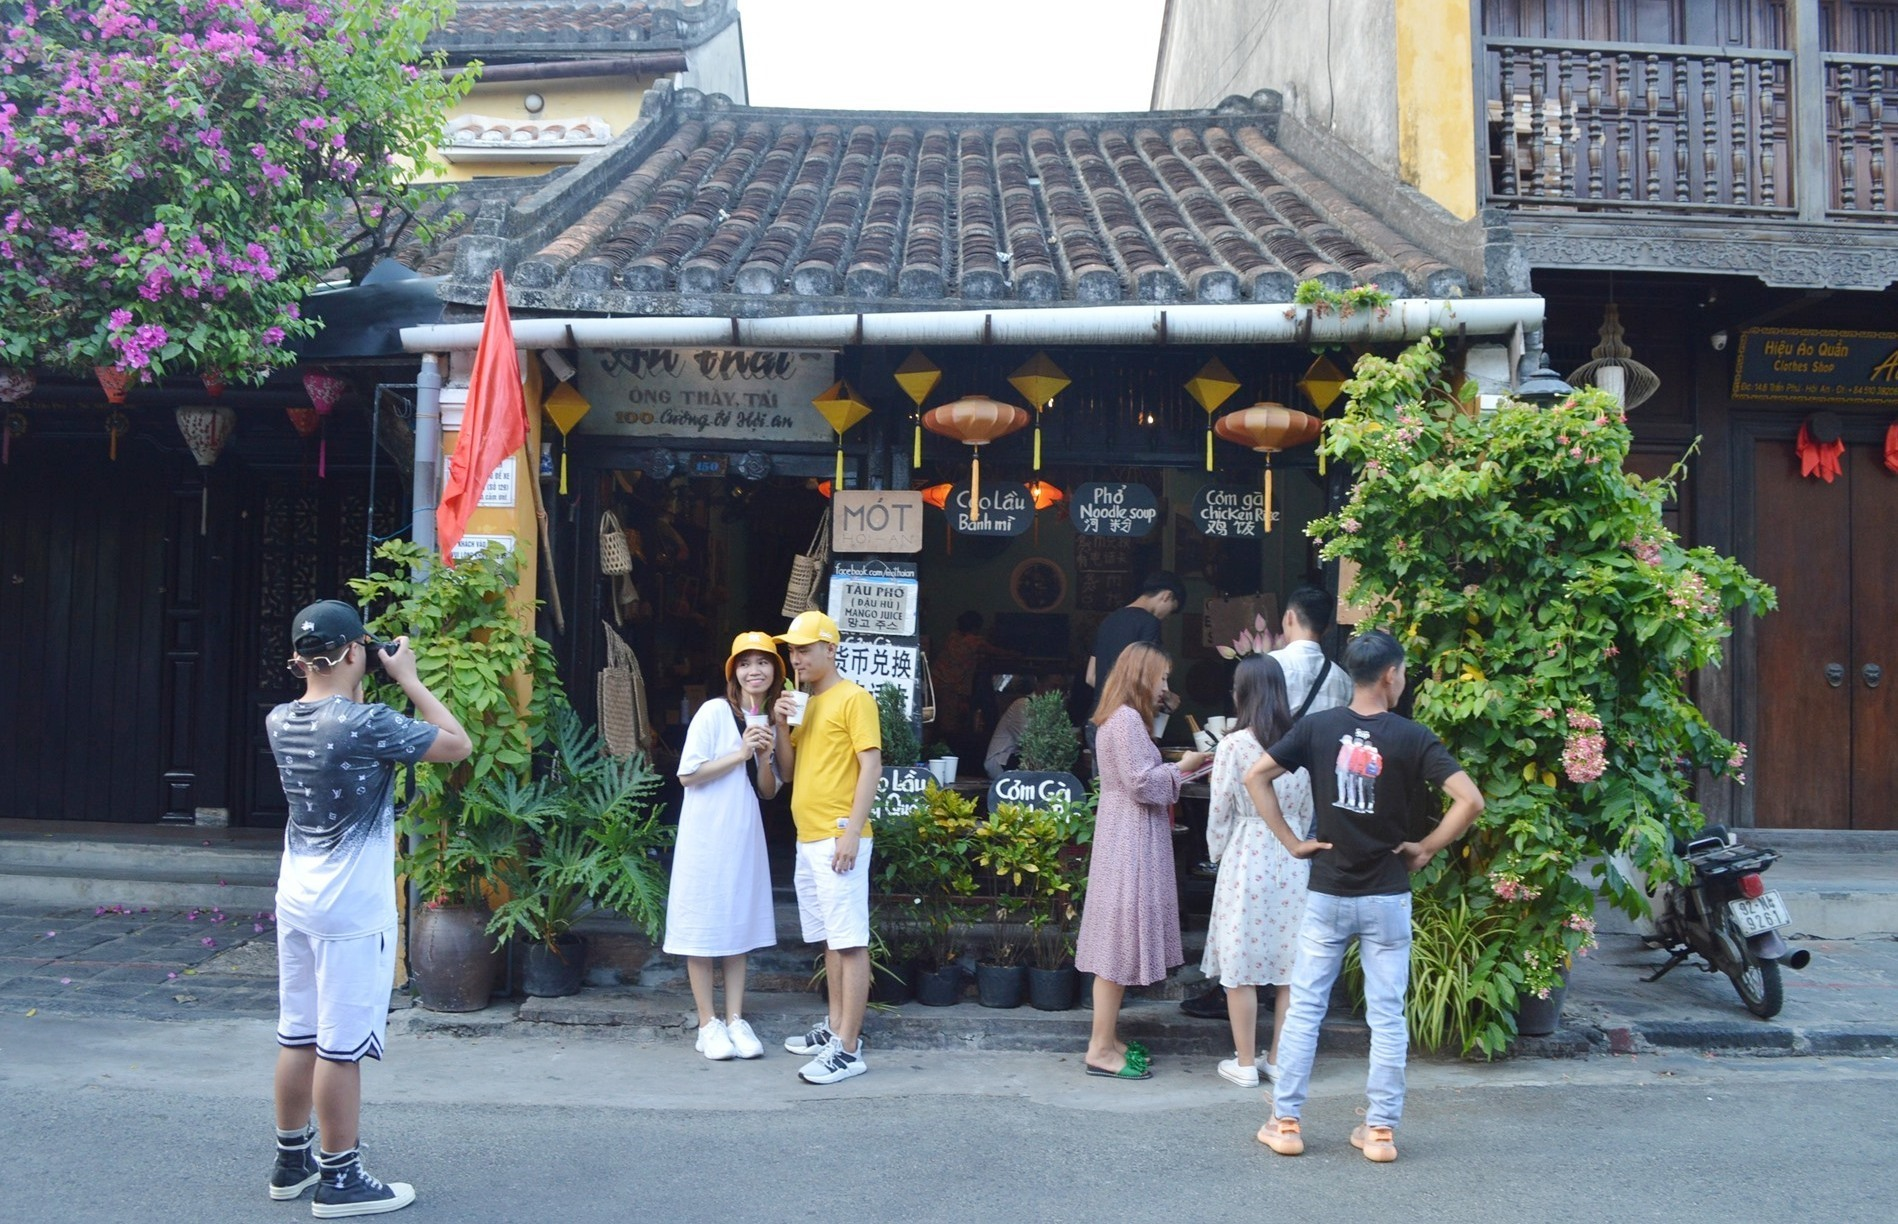 Foreign tourists in a fashion shop in Hoi An